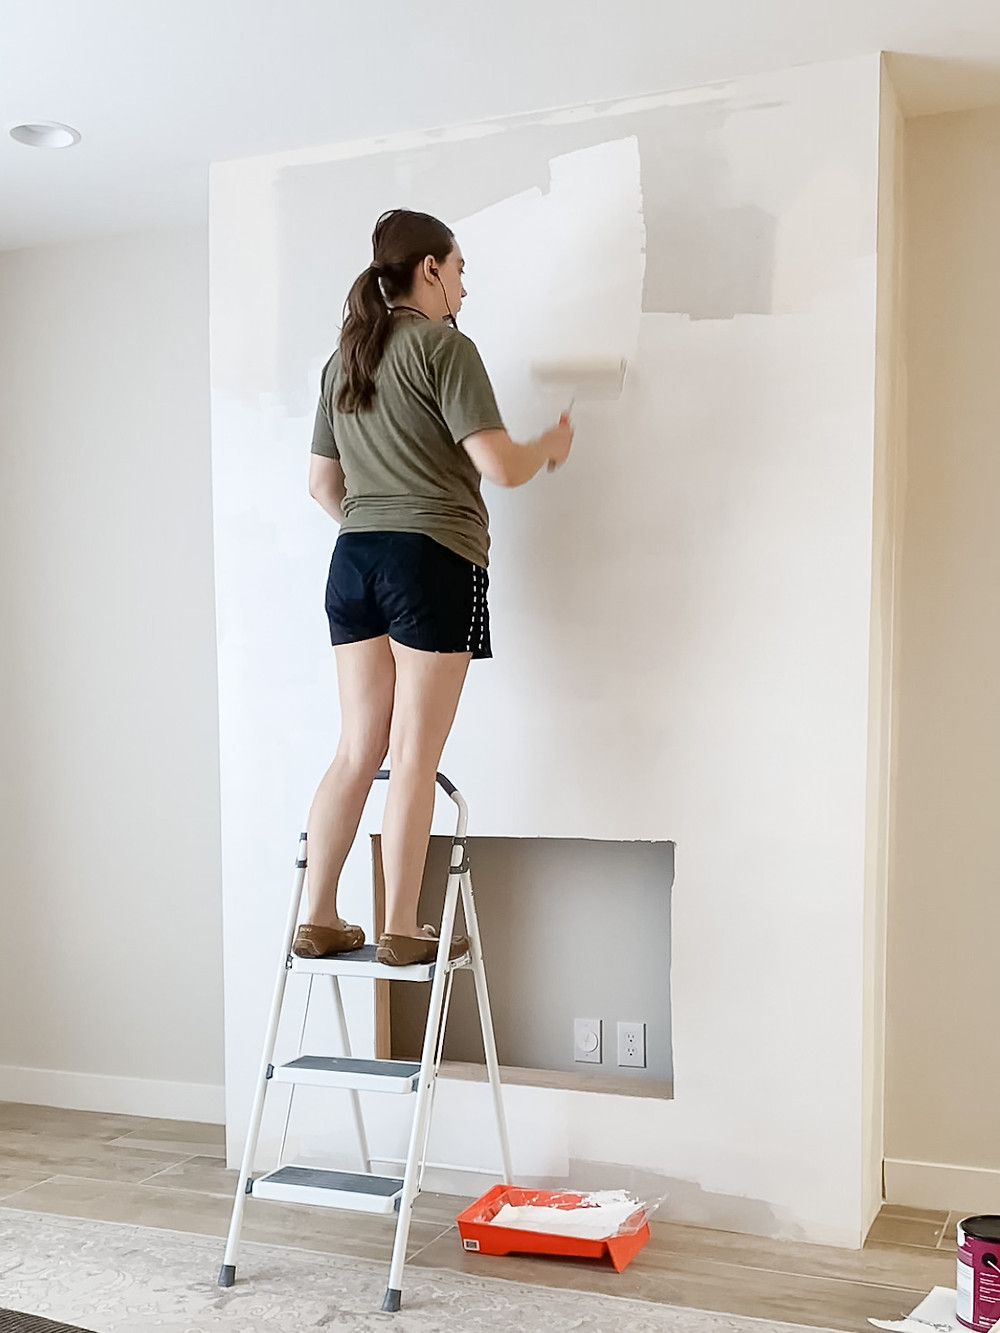 Painting an indoor fireplace with white paint